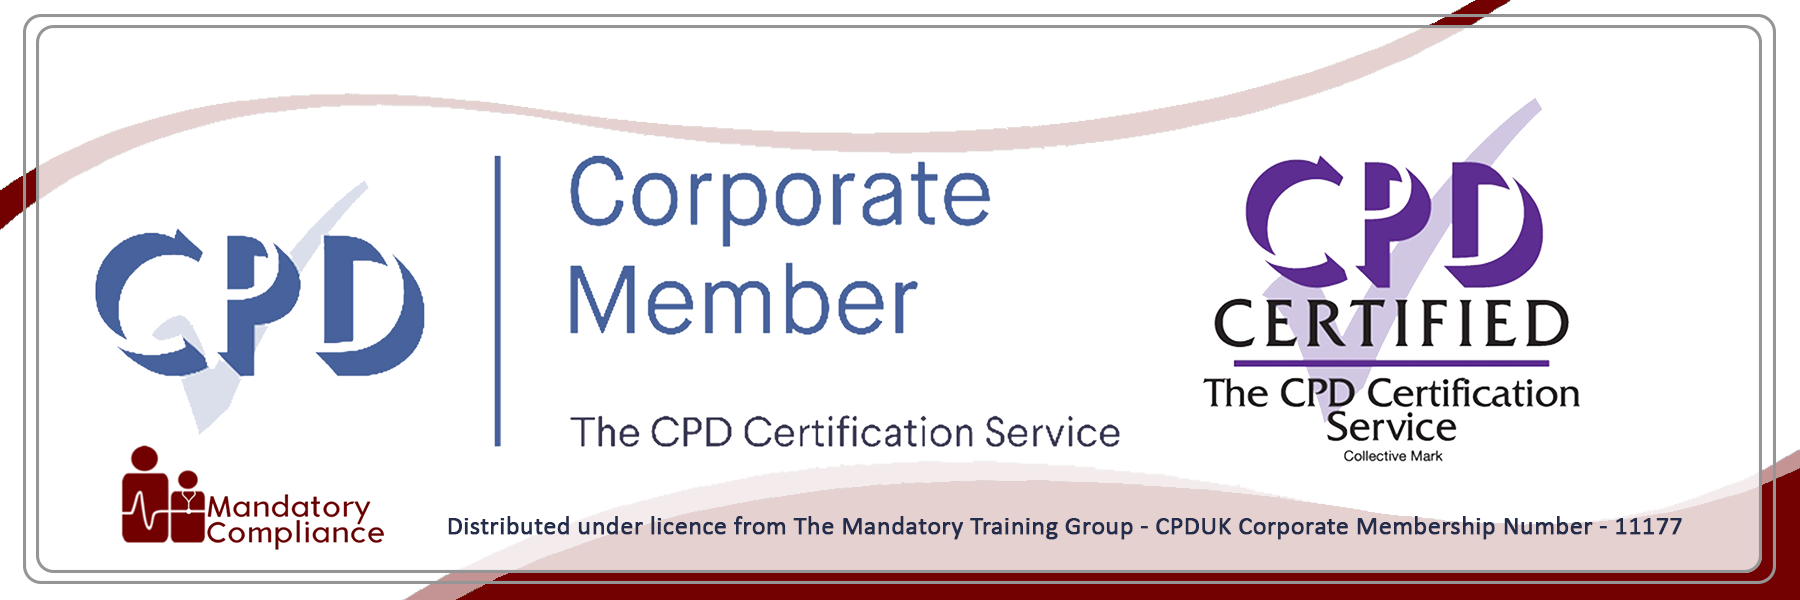 Servant Leadership Training - Online Training Course - CPD Accredited - Mandatory Compliance UK -